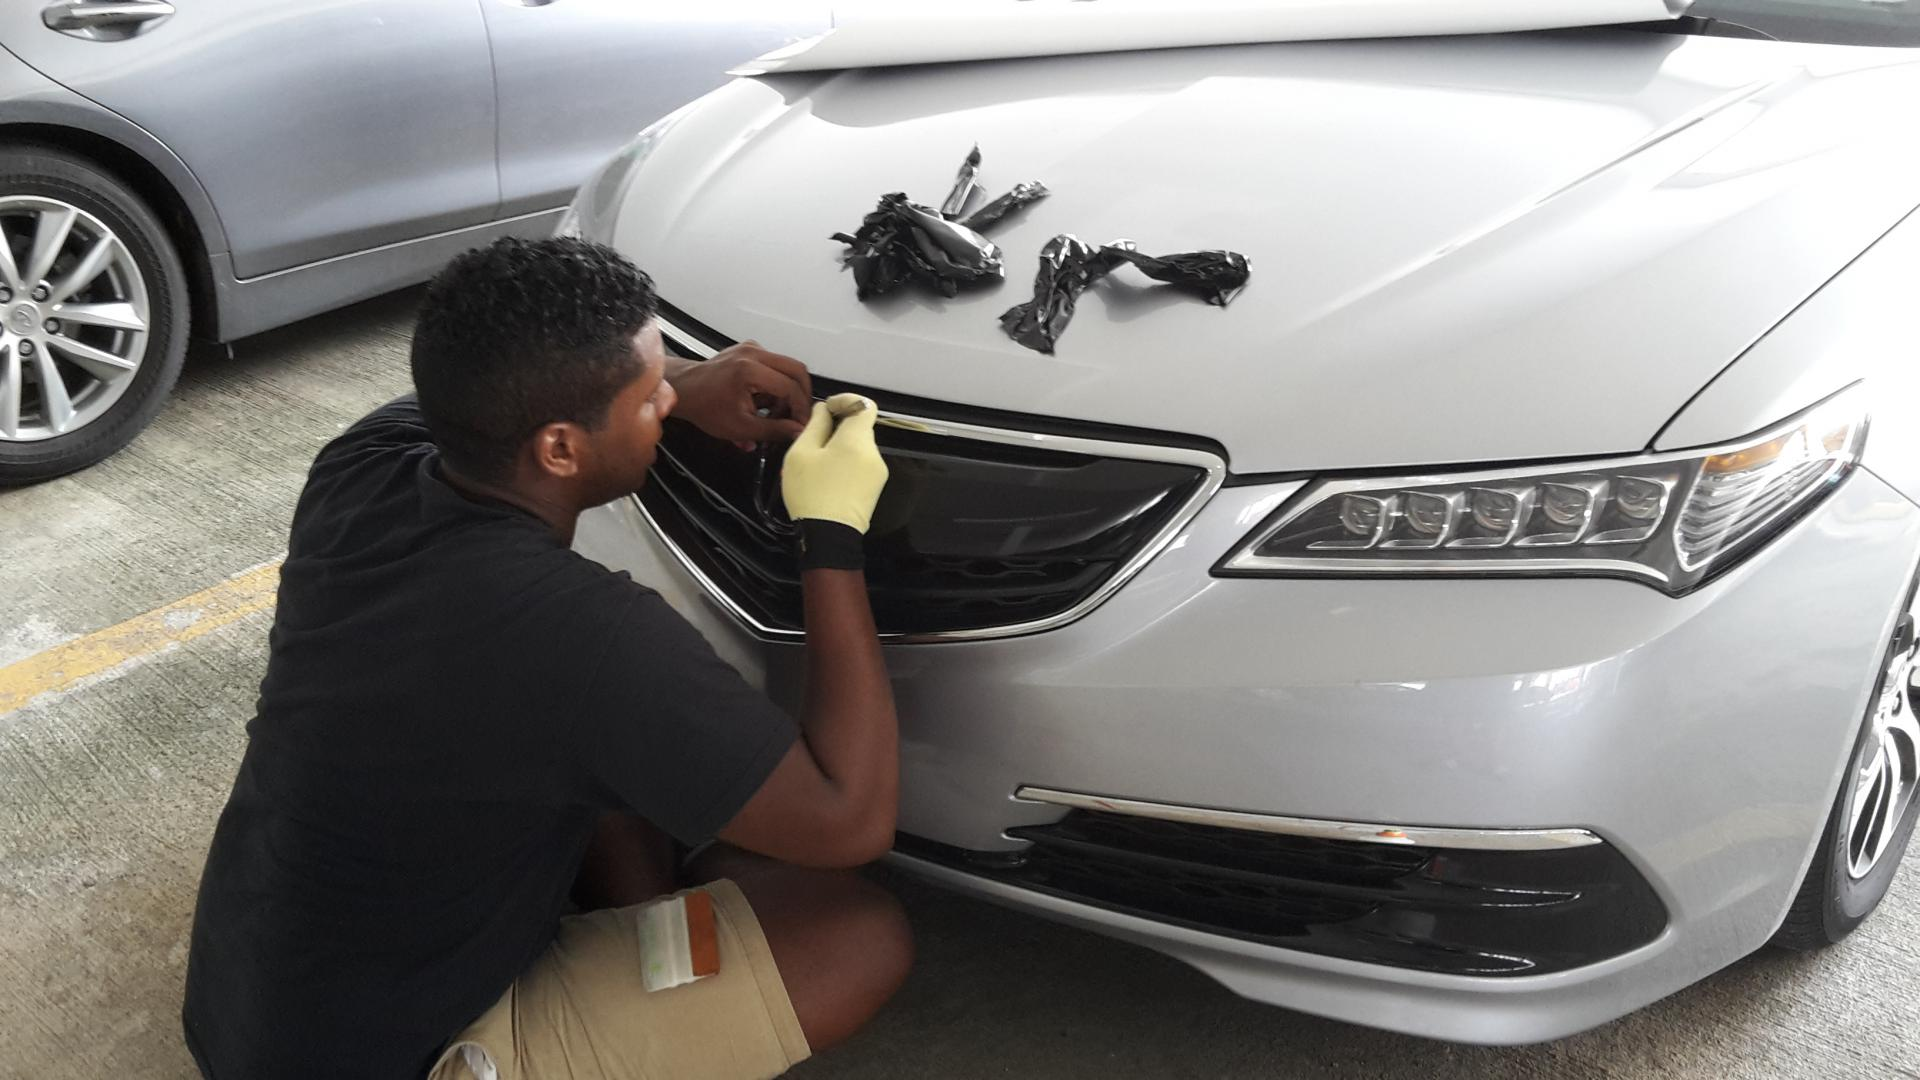 Acura Tlx Forum >> Wrapping the grill - Page 4 - Acura TLX Forum